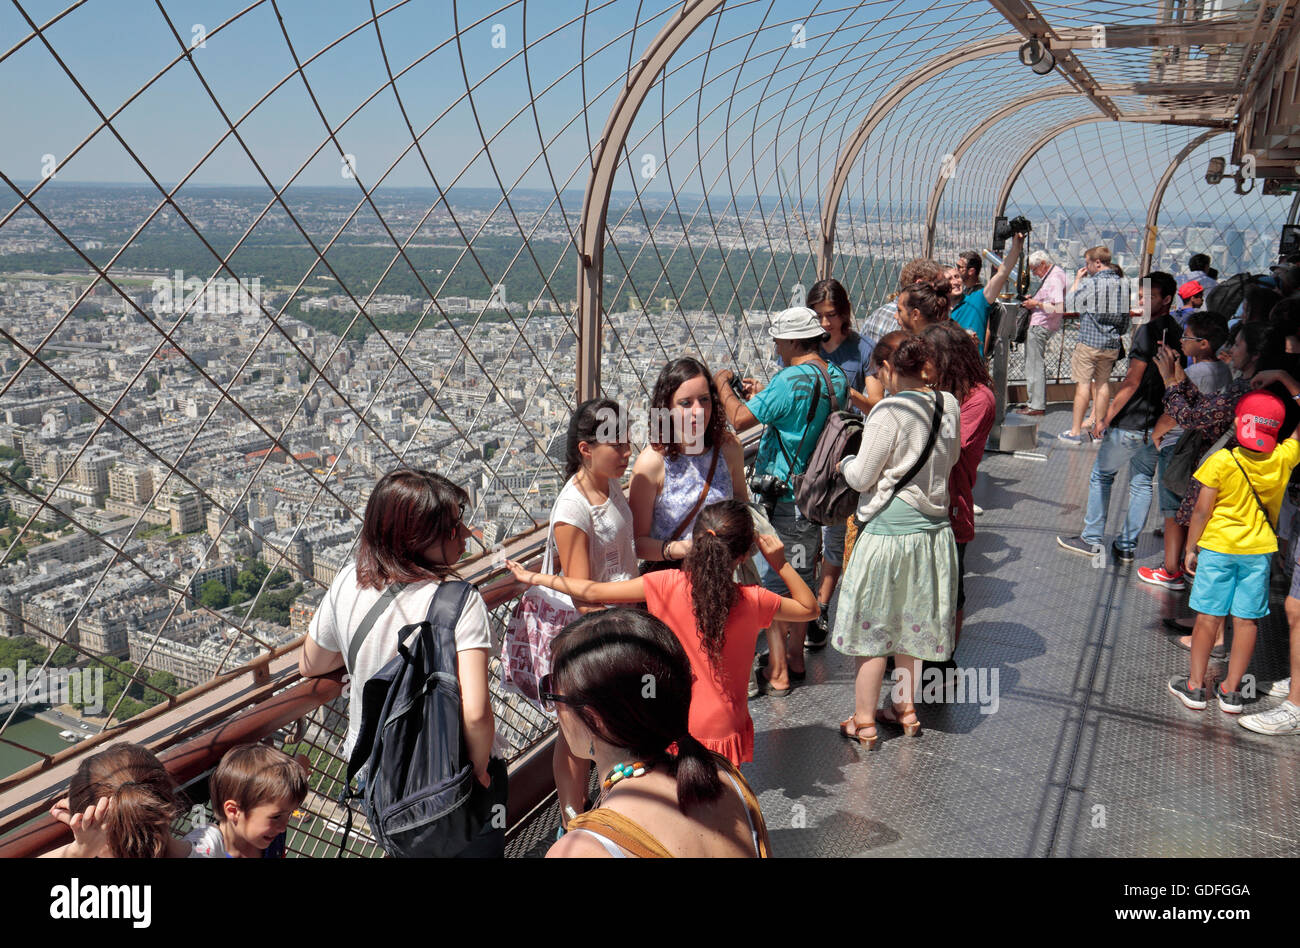 Tourists posing for photos on the upper level walkway of the Eiffel Tower in Paris, France. - Stock Image